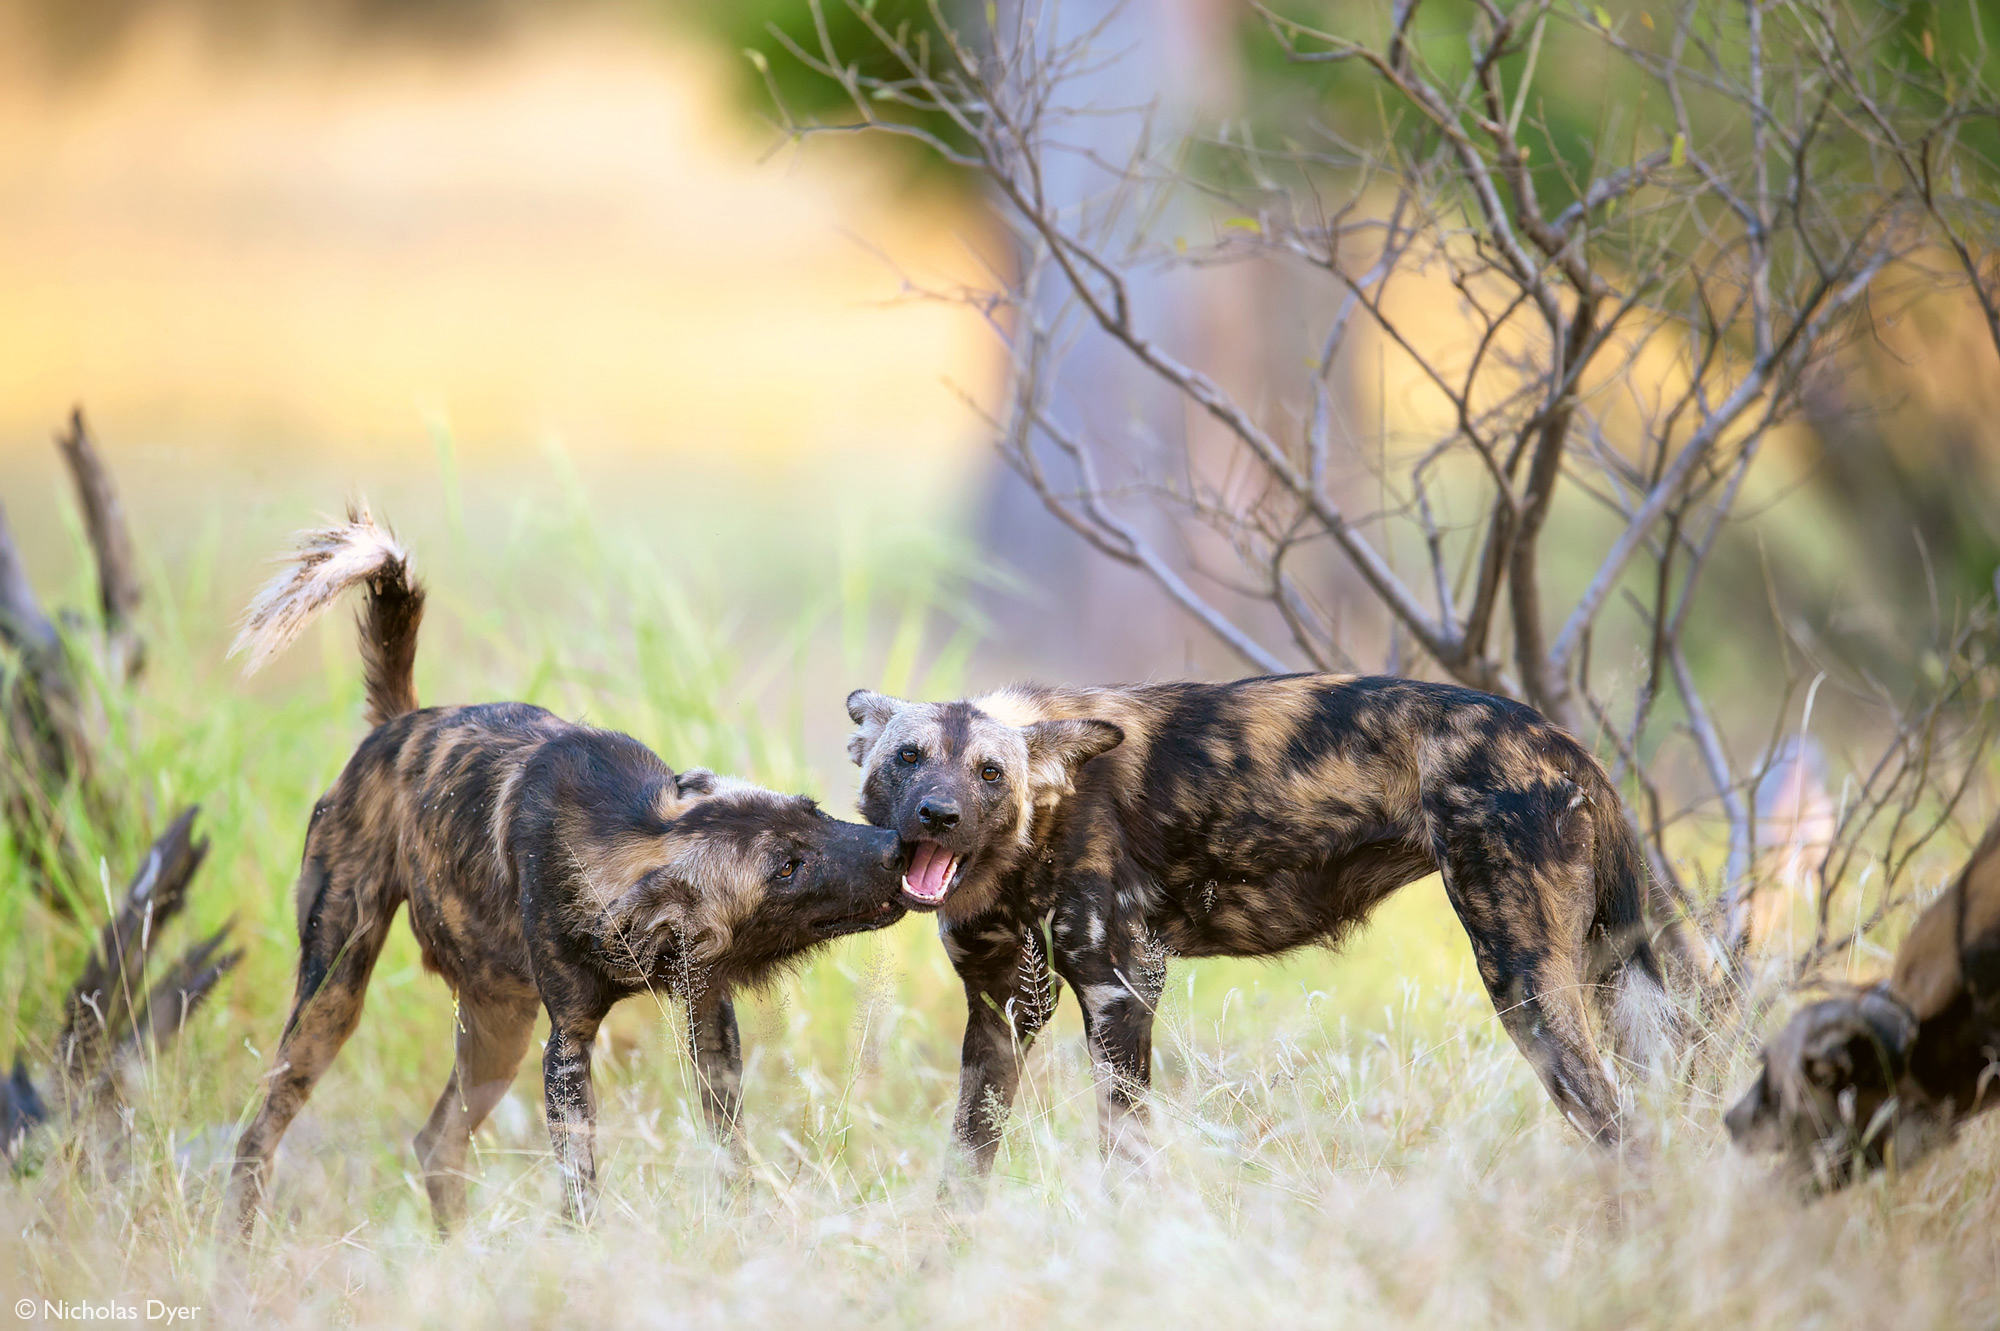 Two painted wolves, African wild dogs, in Mana Pools National Park, Zimbabwe